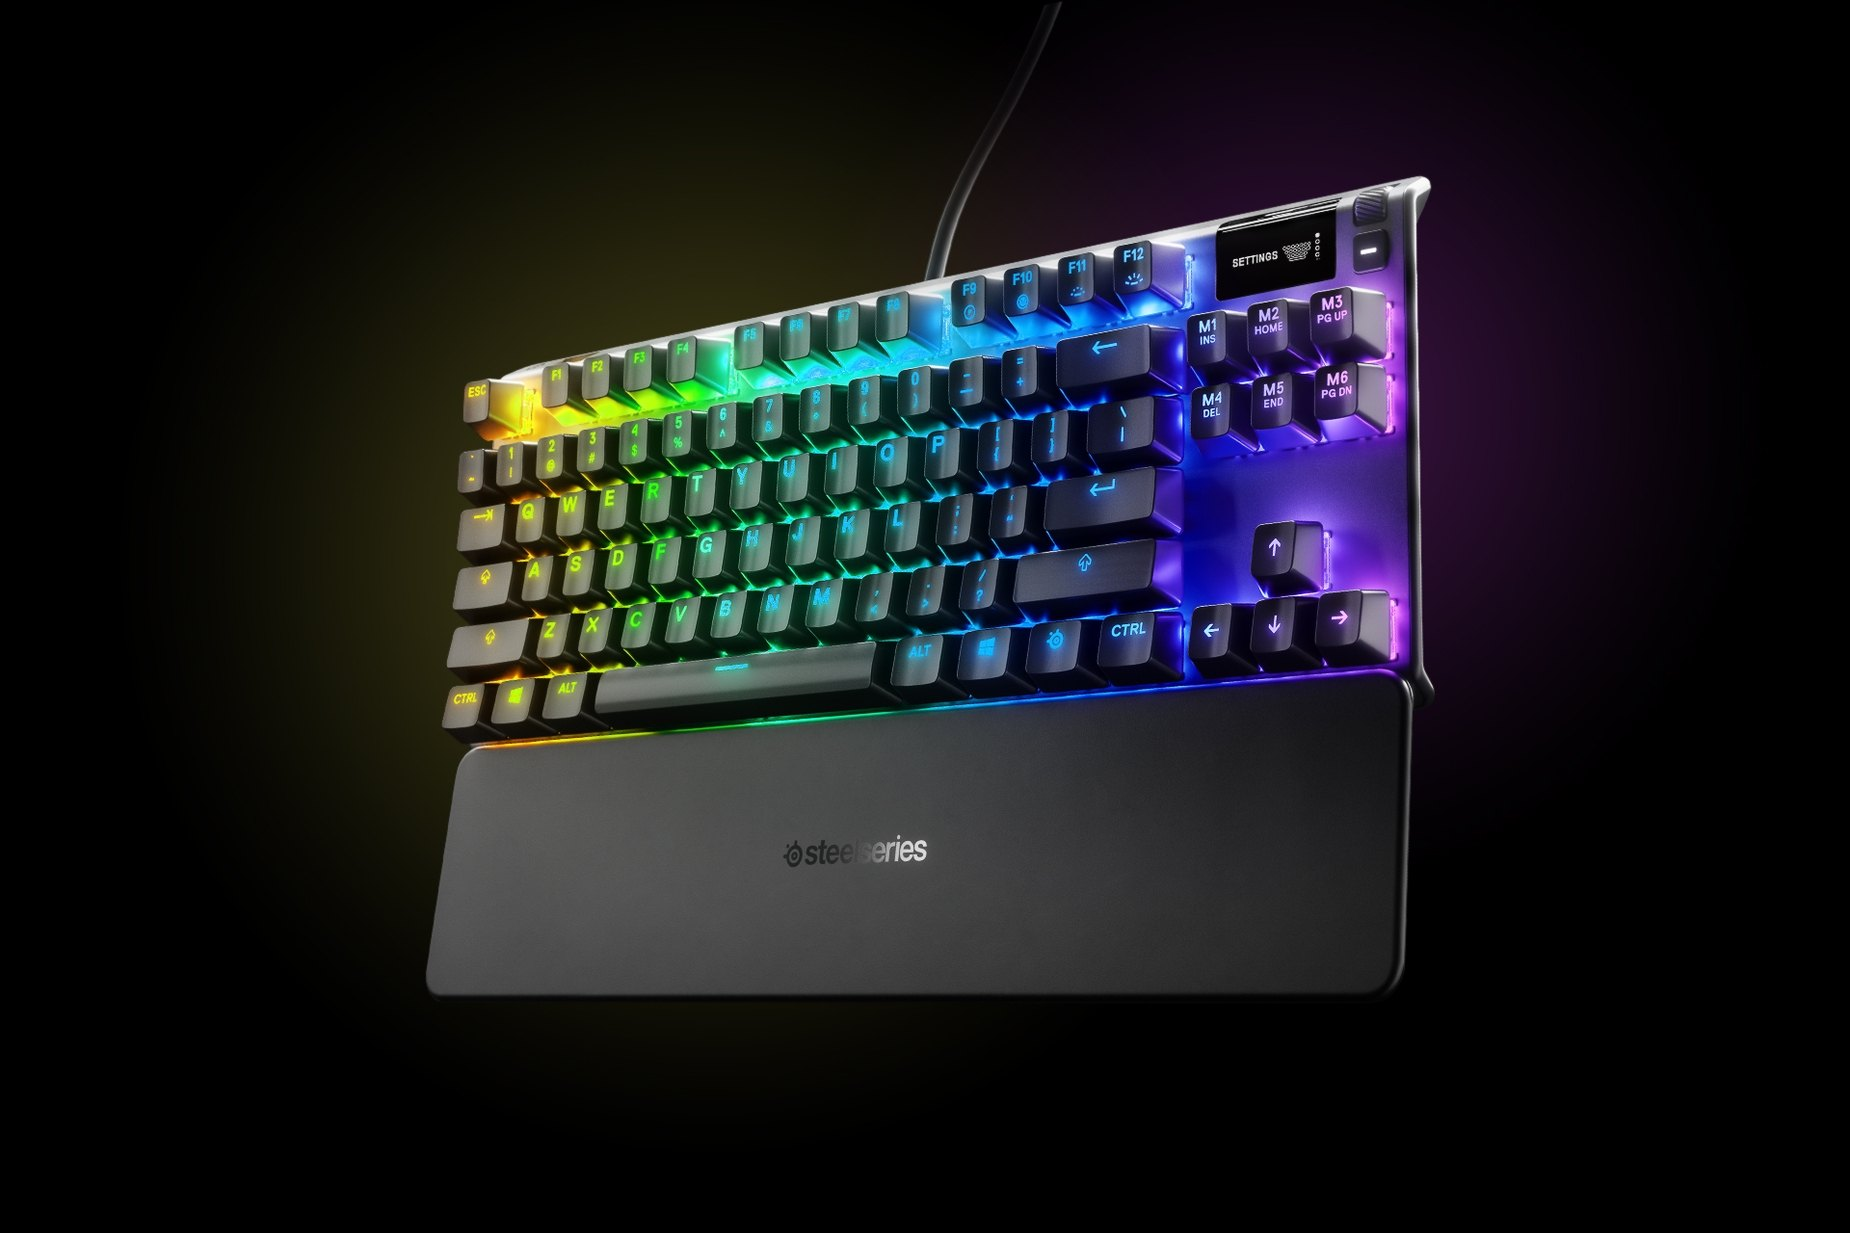 Japanese-Apex 7 TKL (Blue Switch) gaming keyboard with the illumination lit up on dark background, also shows the OLED screen and controls used to change settings and adjust audio